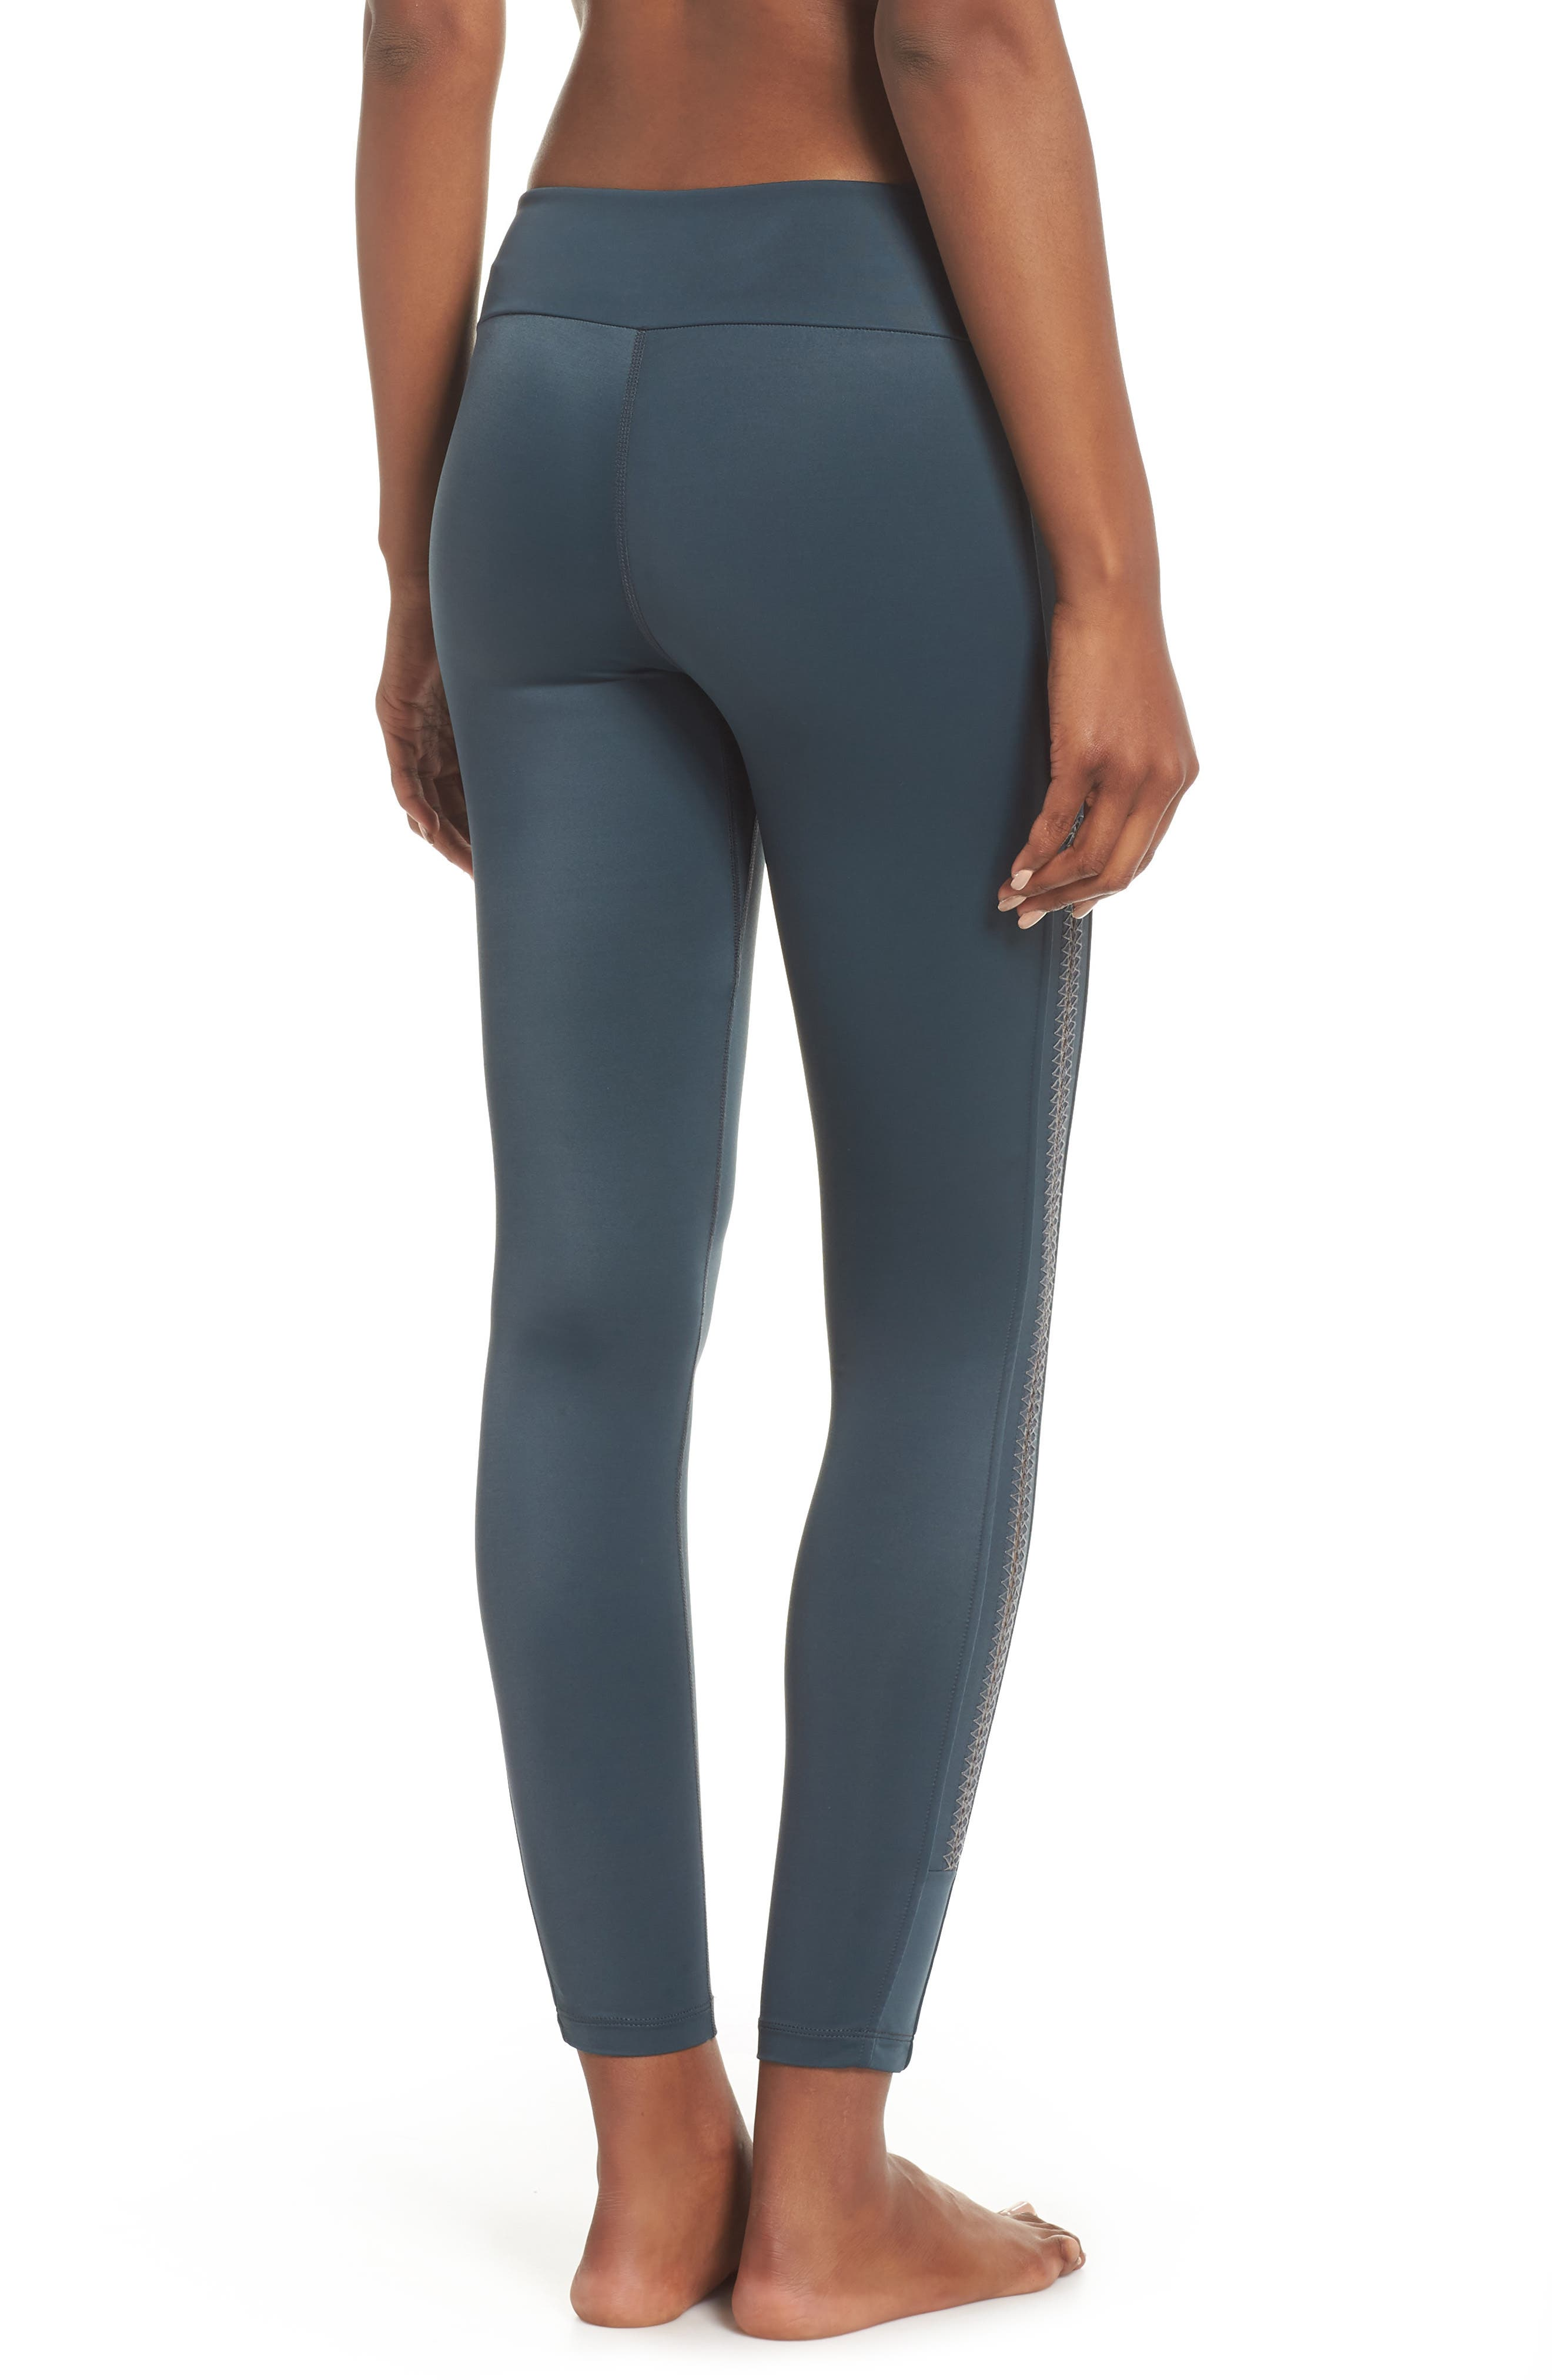 Crocheta Tourmaline High Waist Leggings,                             Alternate thumbnail 2, color,                             301